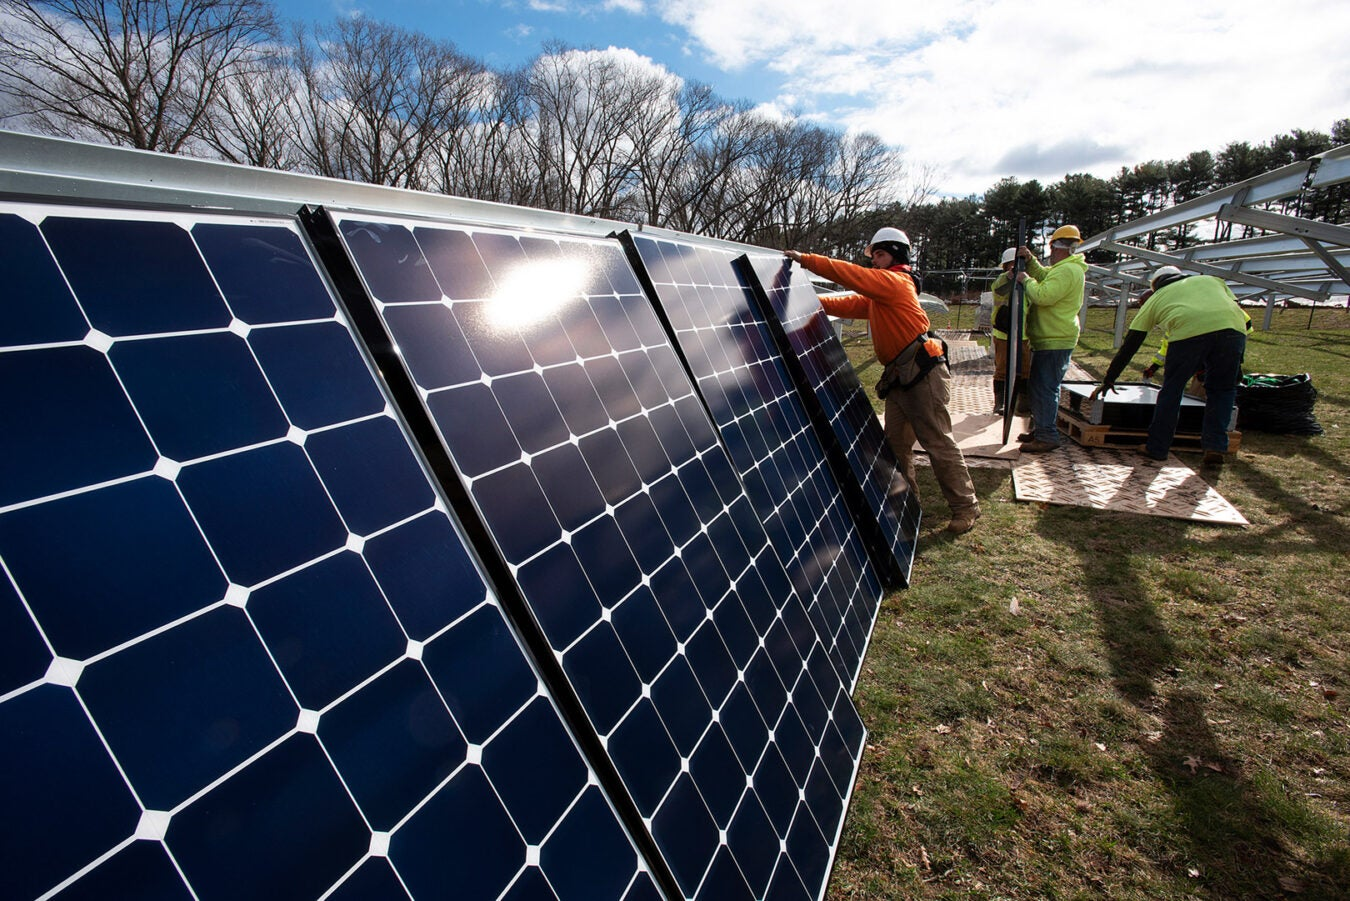 Construction workers erect solar panels